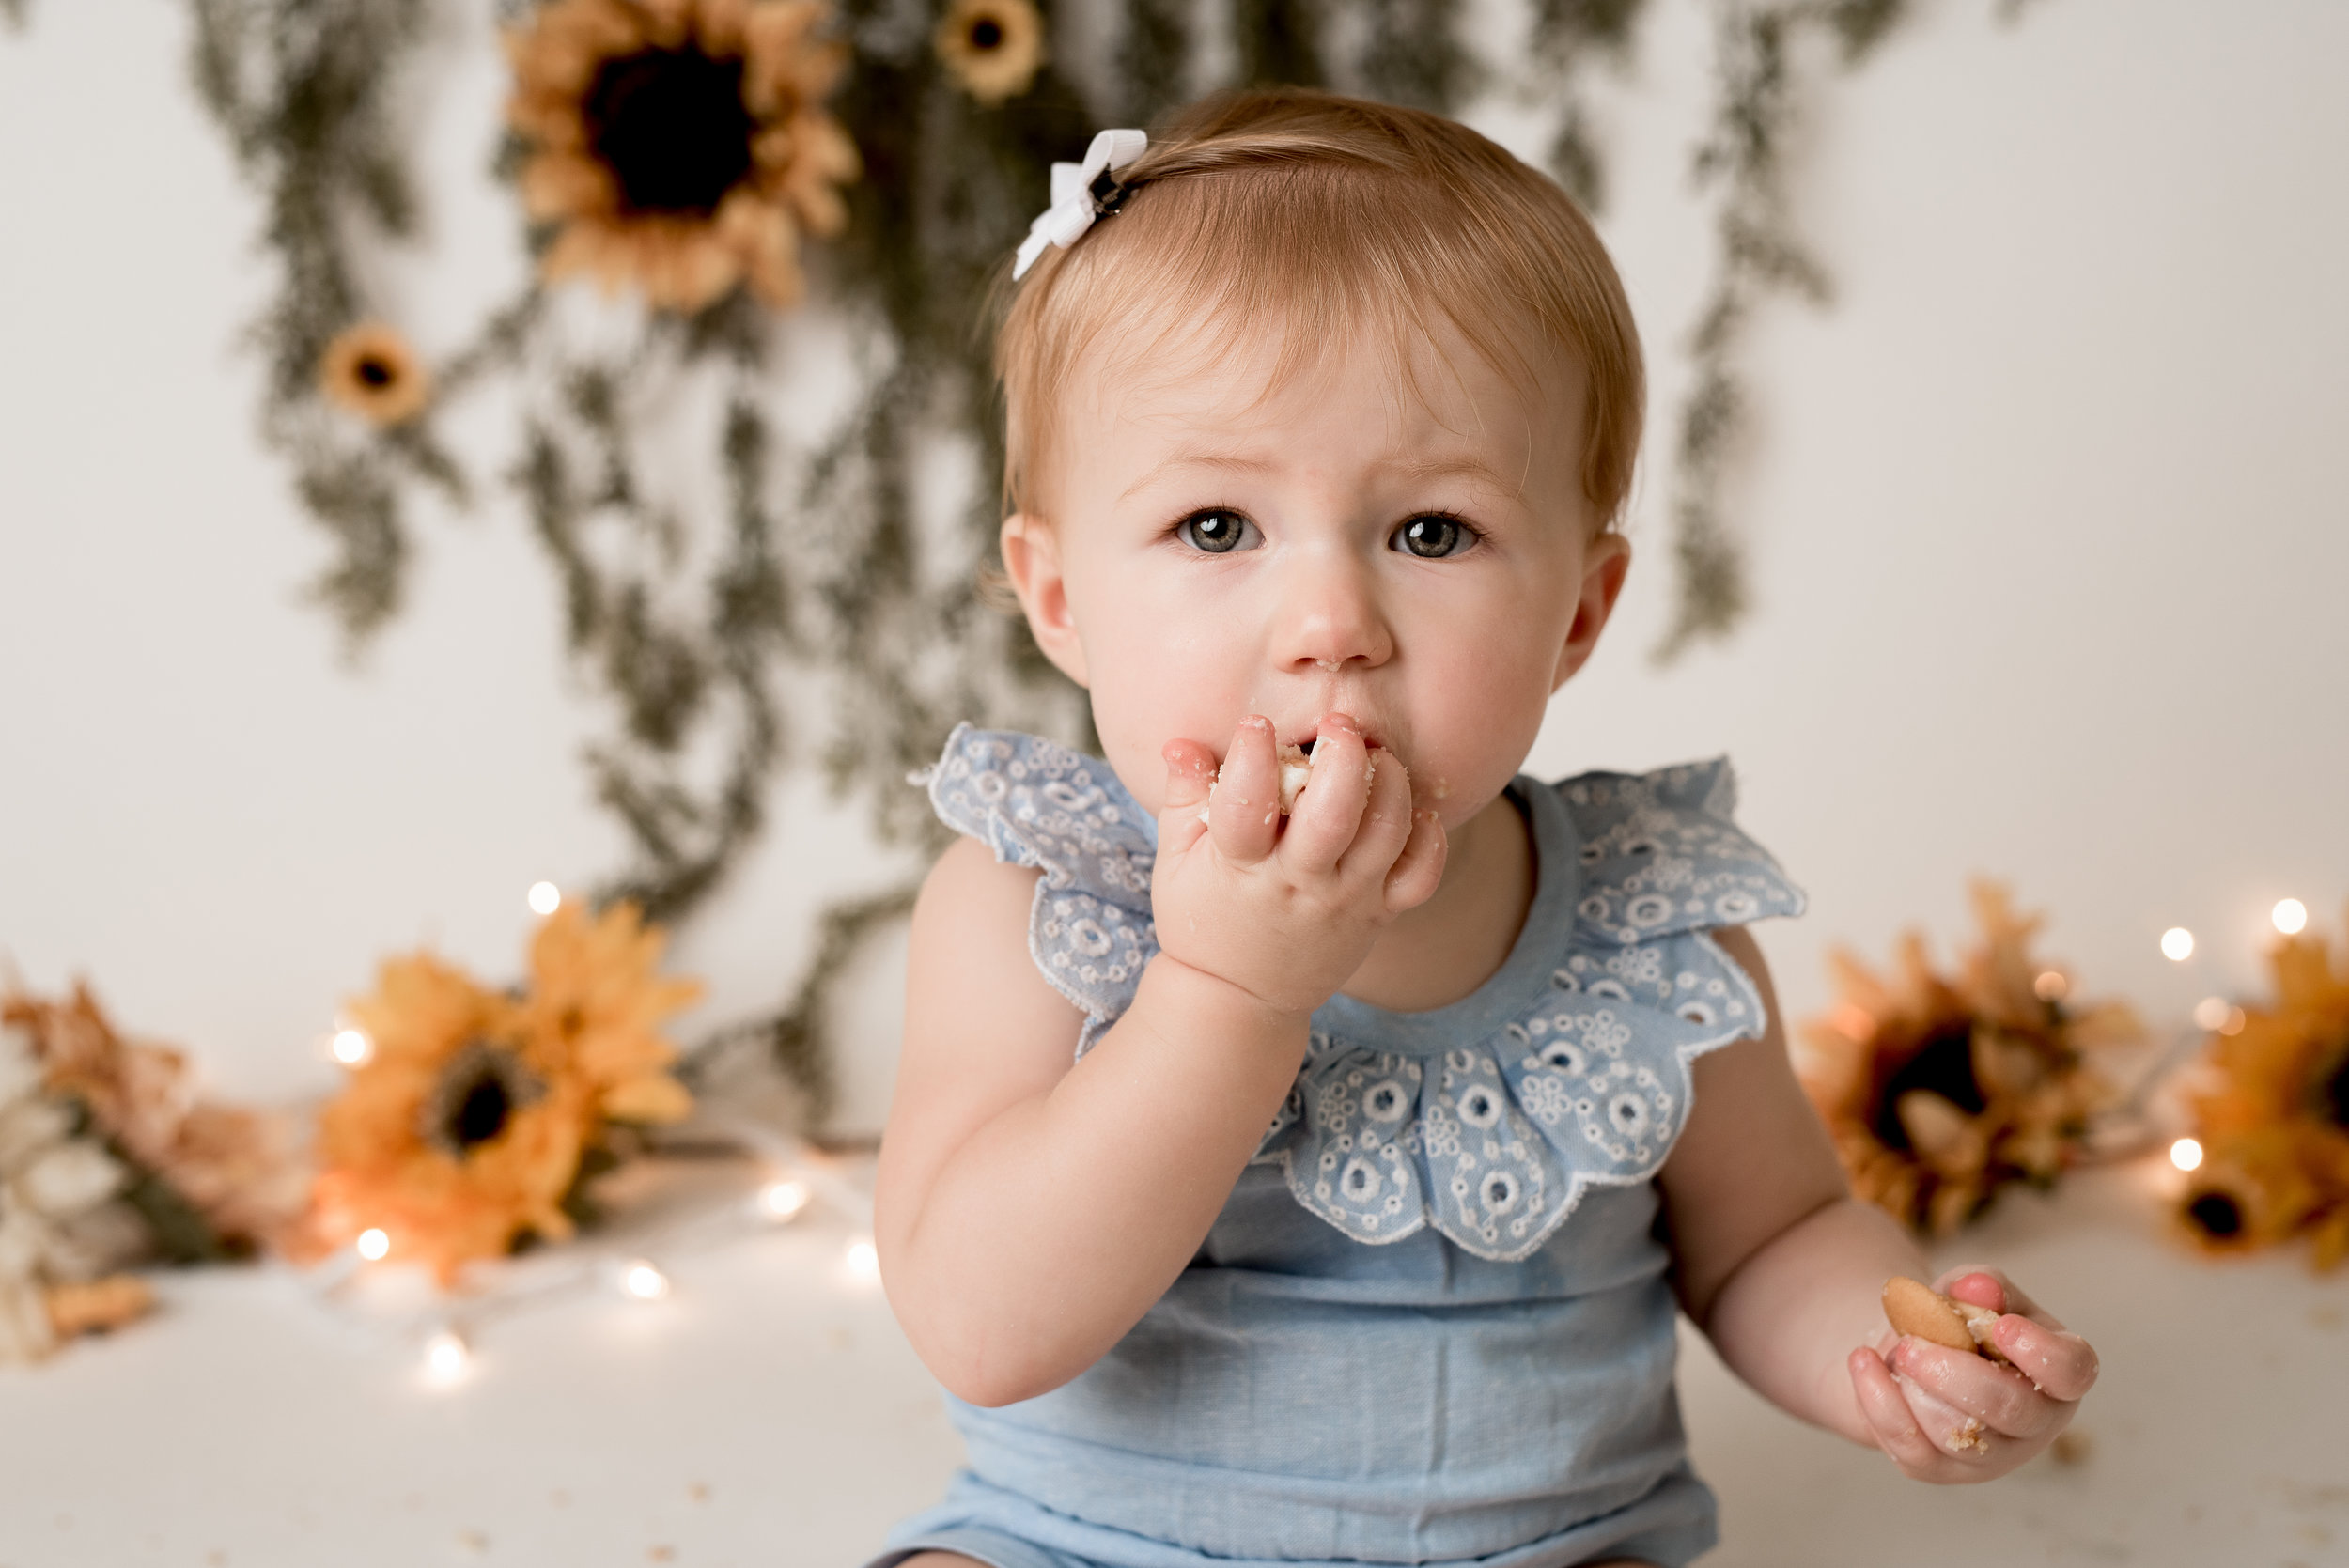 sunflower theme little girl eating her cake by the handful with junebug photography studio in manhattan, ks